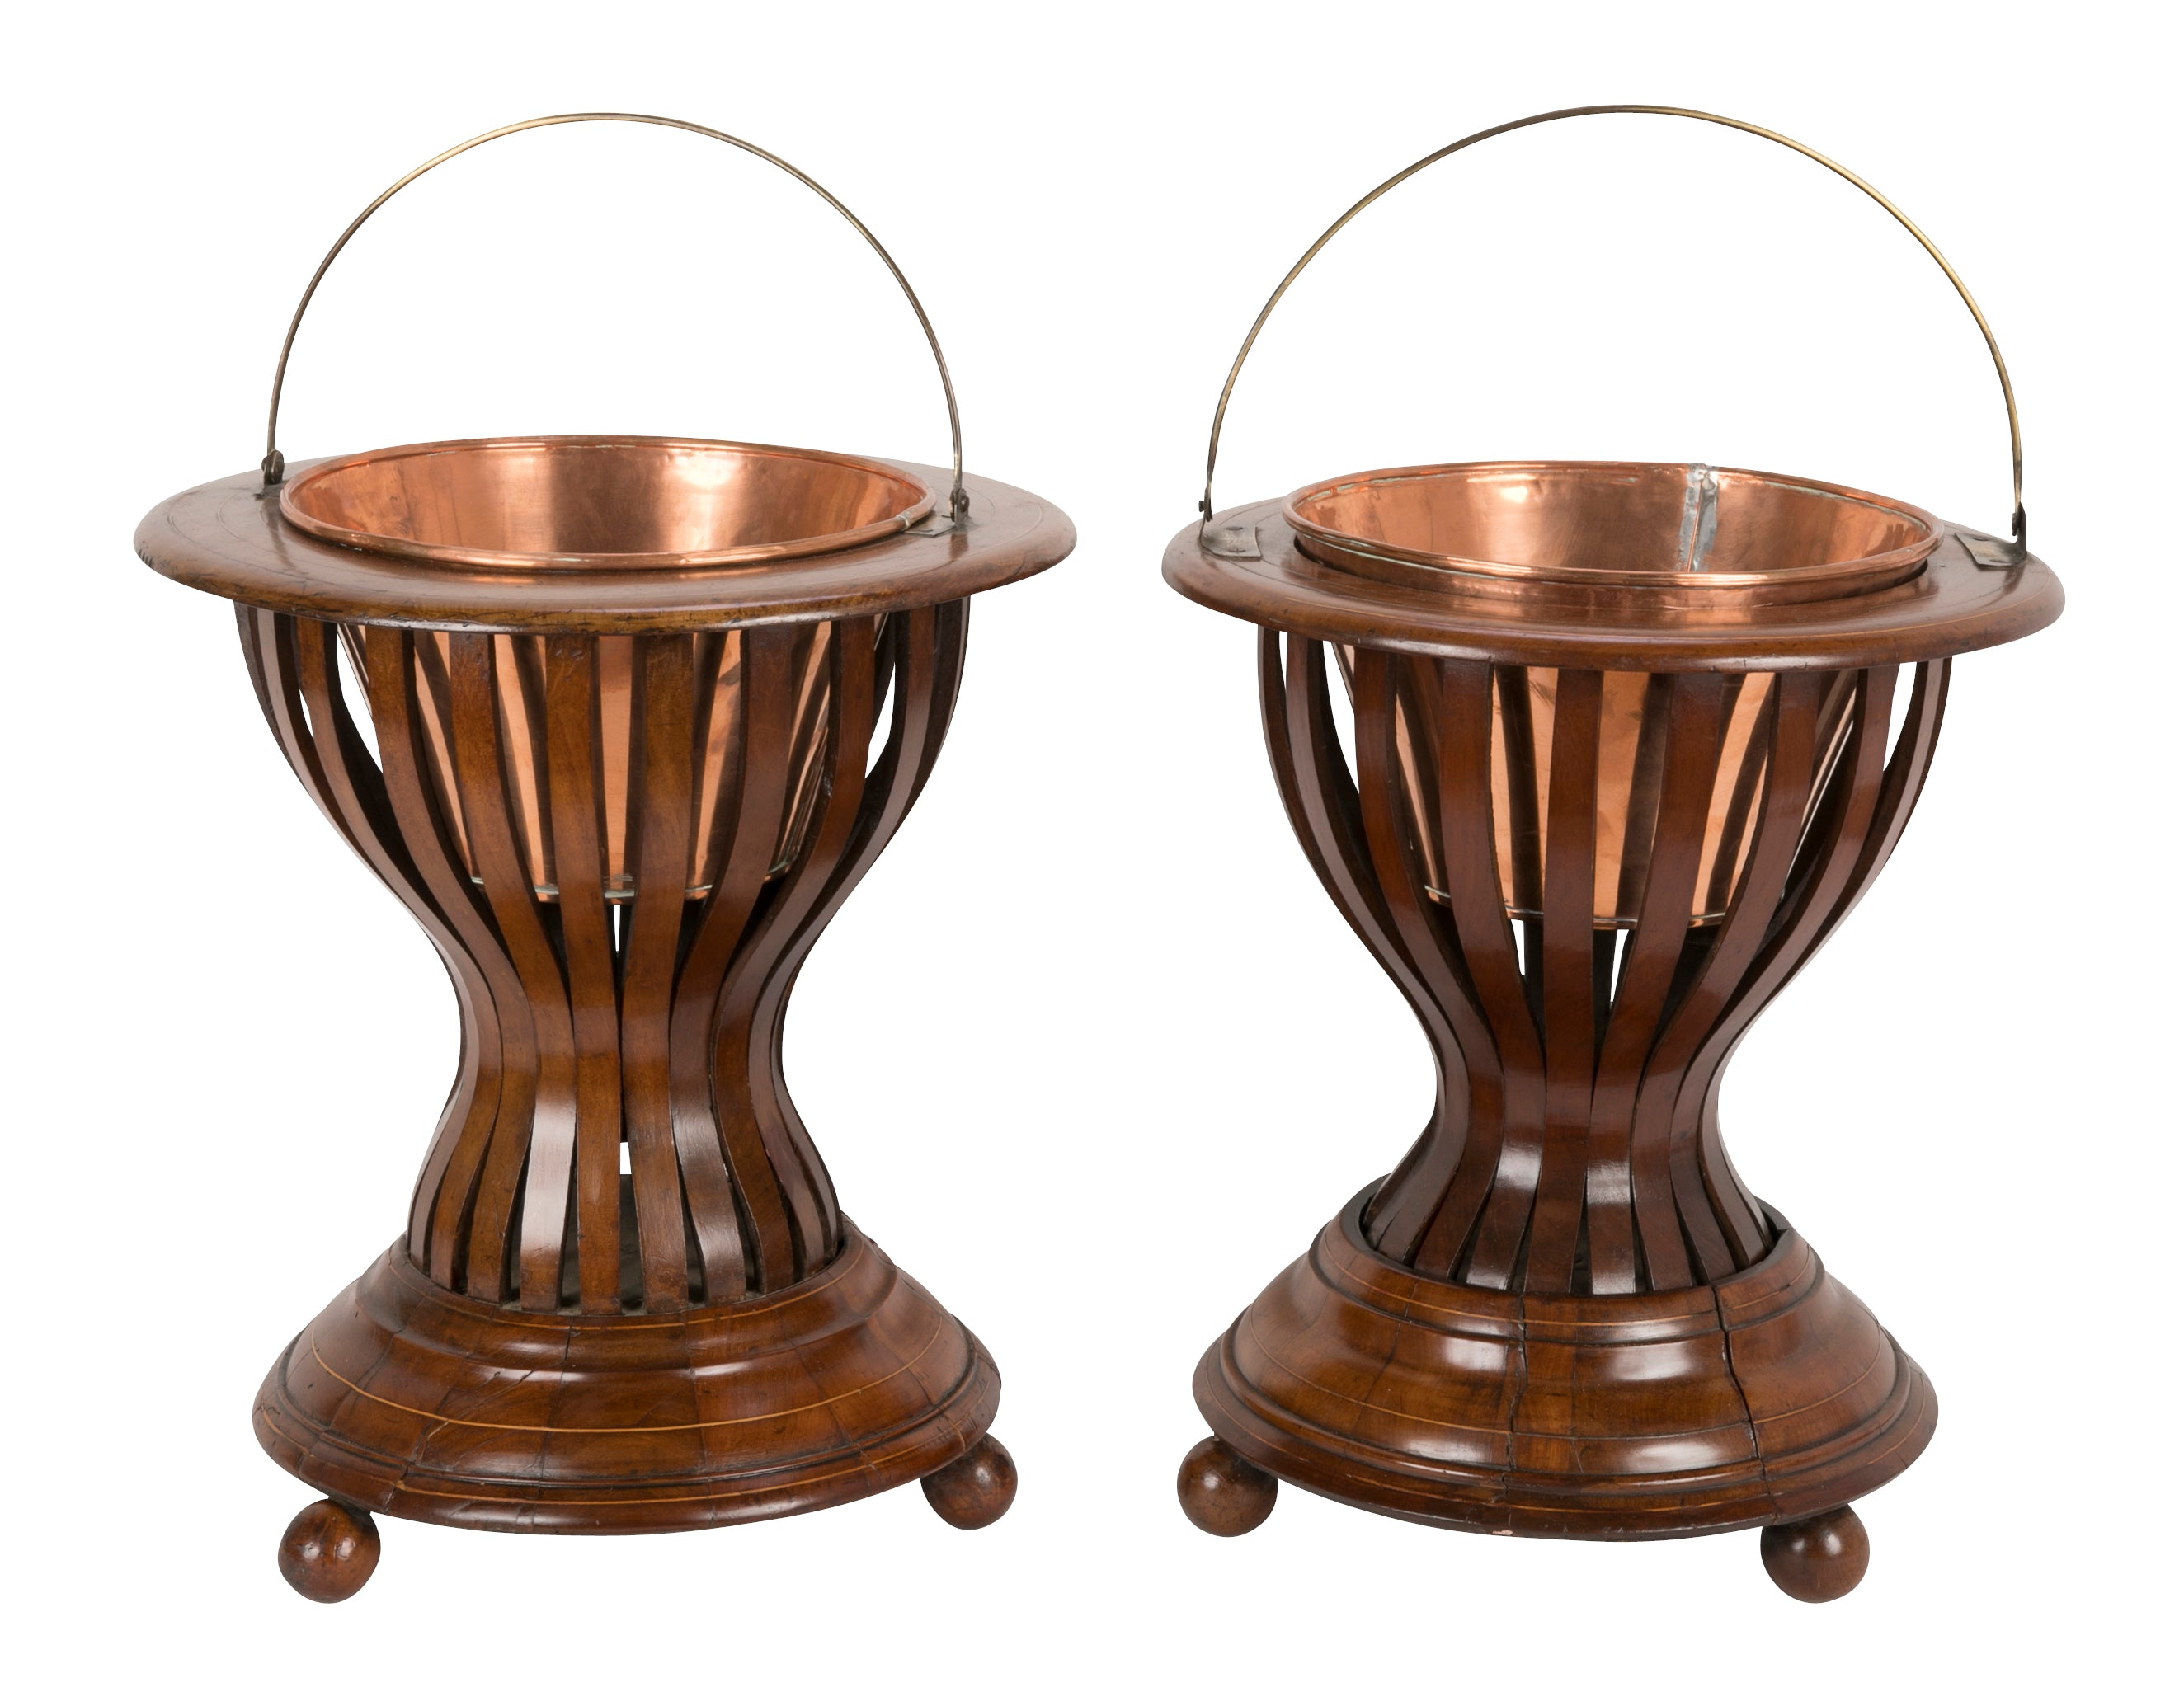 Pair of Regency Mahogany Peat Buckets or Planters